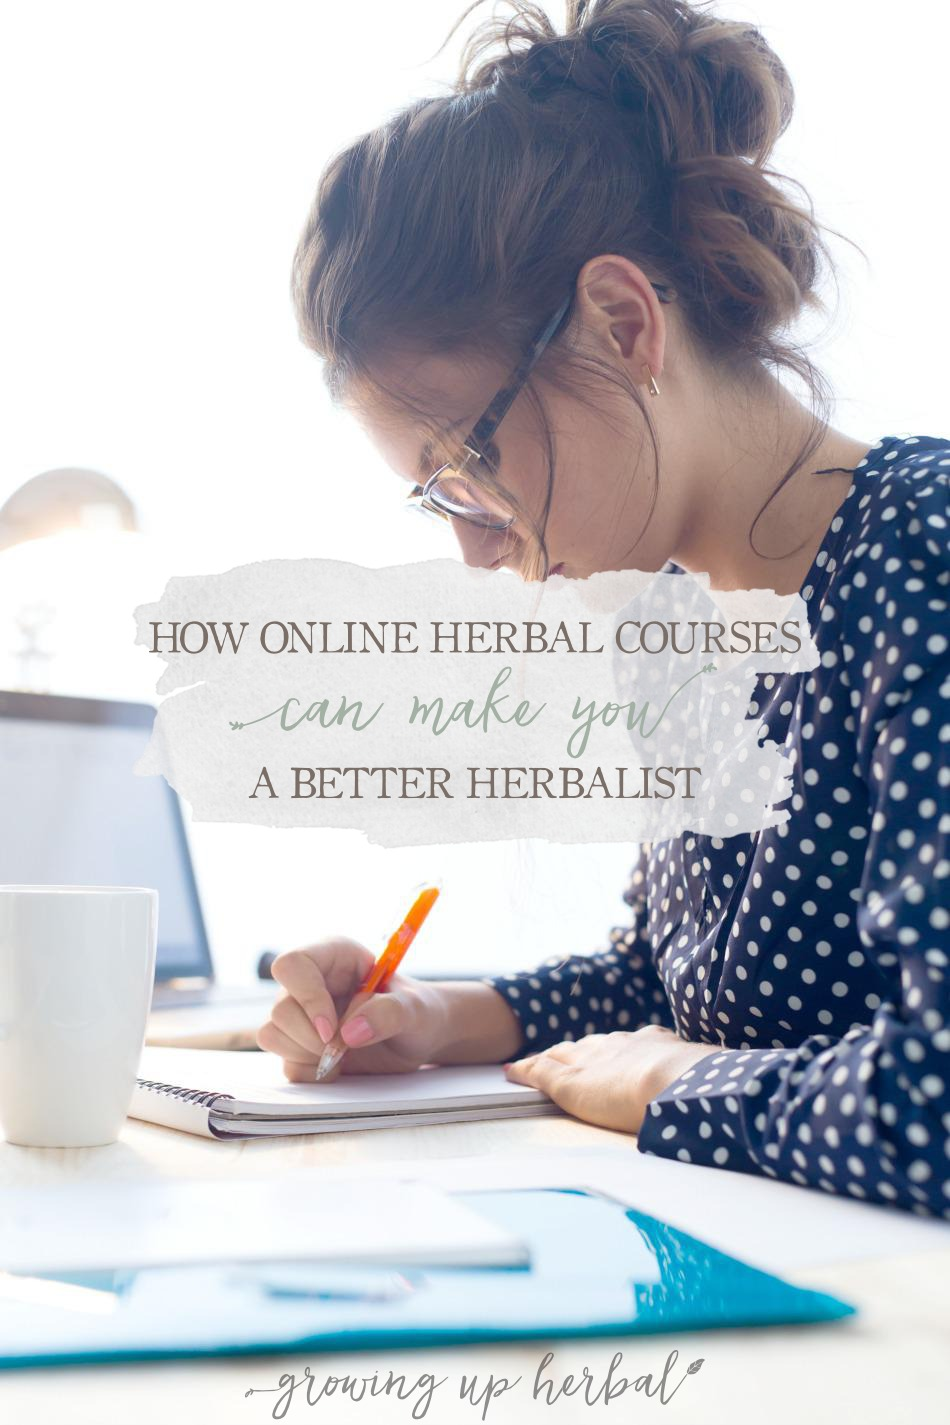 How Online Herbal Courses Can Make You A Better Herbalist | Growing Up Herbal | Want to learn how to be come an herbalist? Online herbal courses can help!